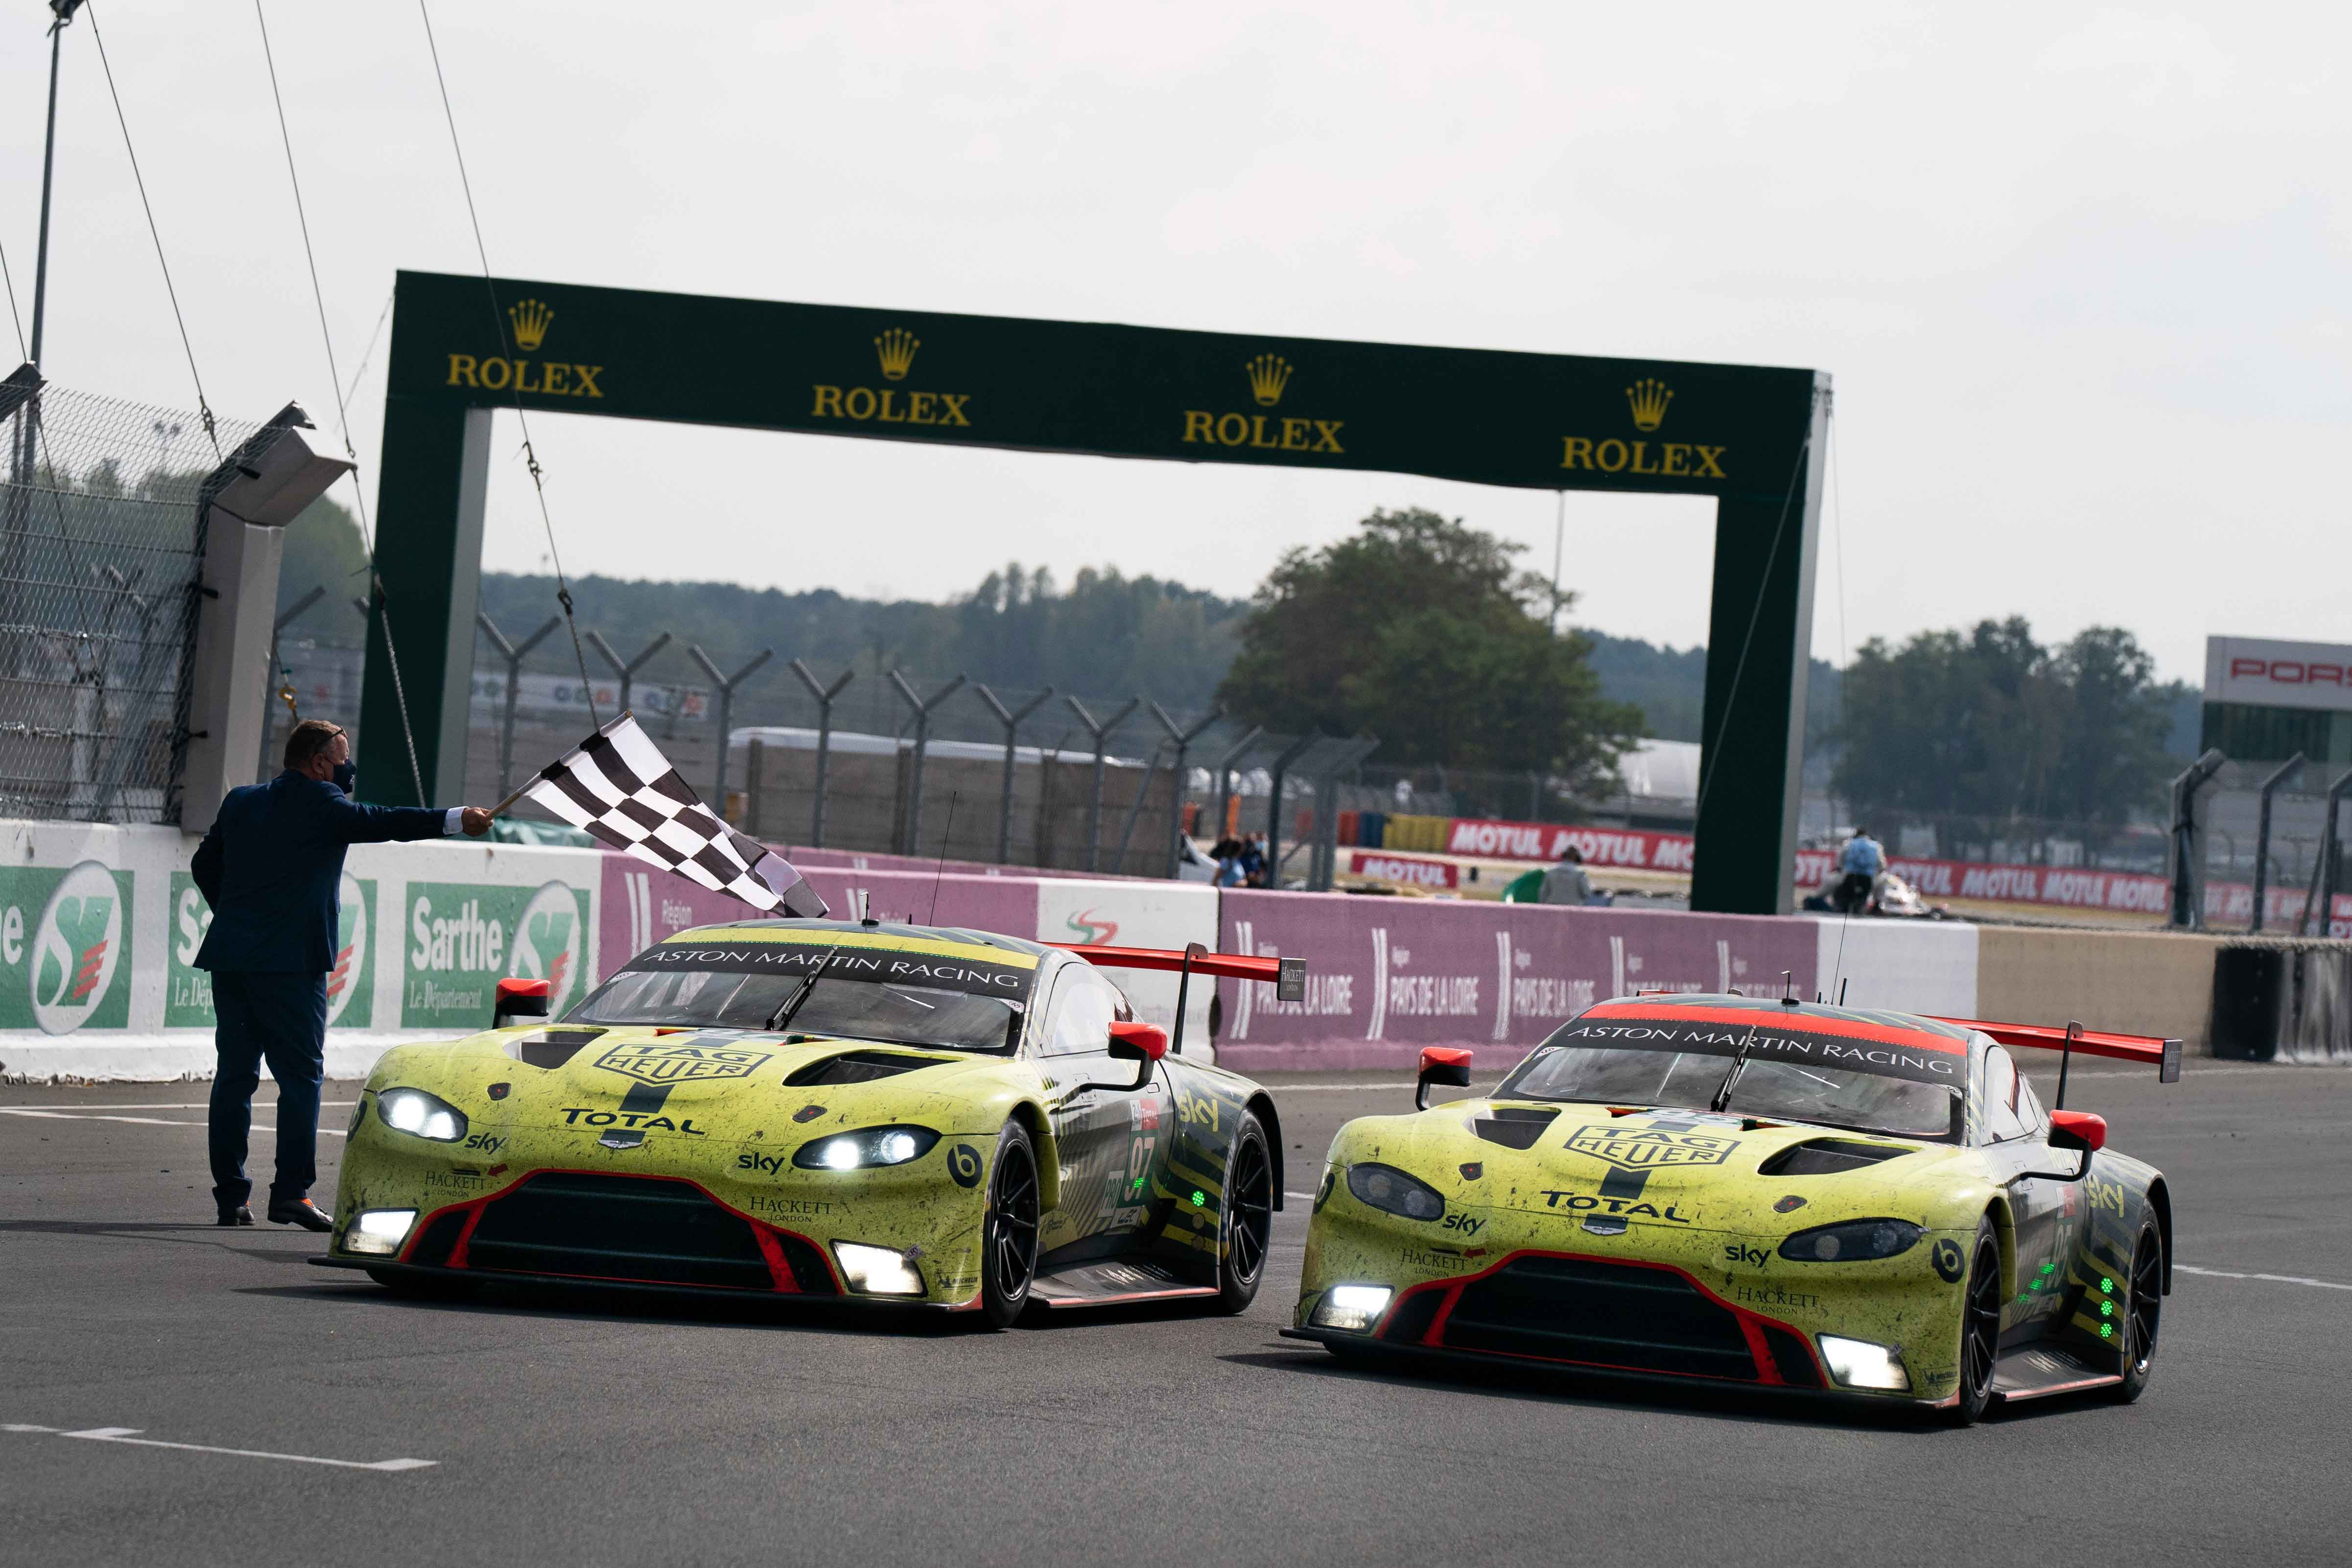 Aston martin wins the 24 hours of le mans and clinches the wec manufacturers' title